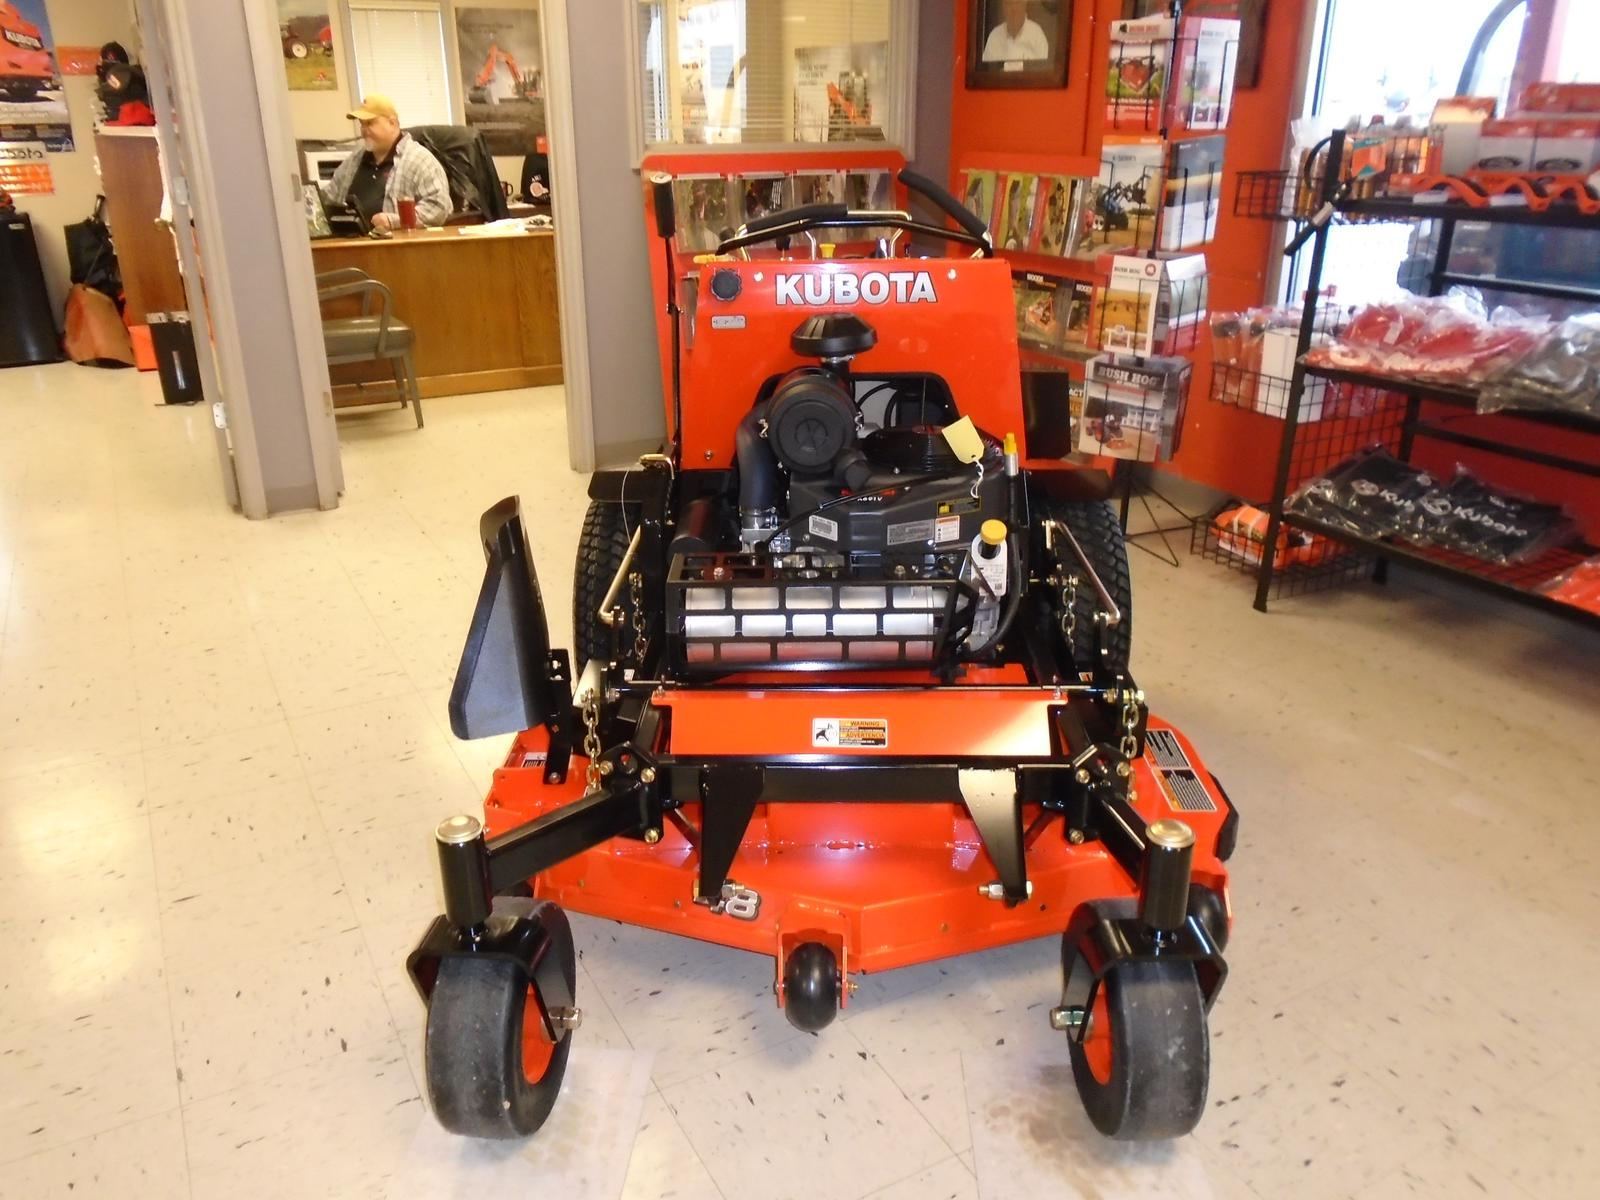 Lawn Mowers and Disc Mower from Kubota Tyler Brothers Farm